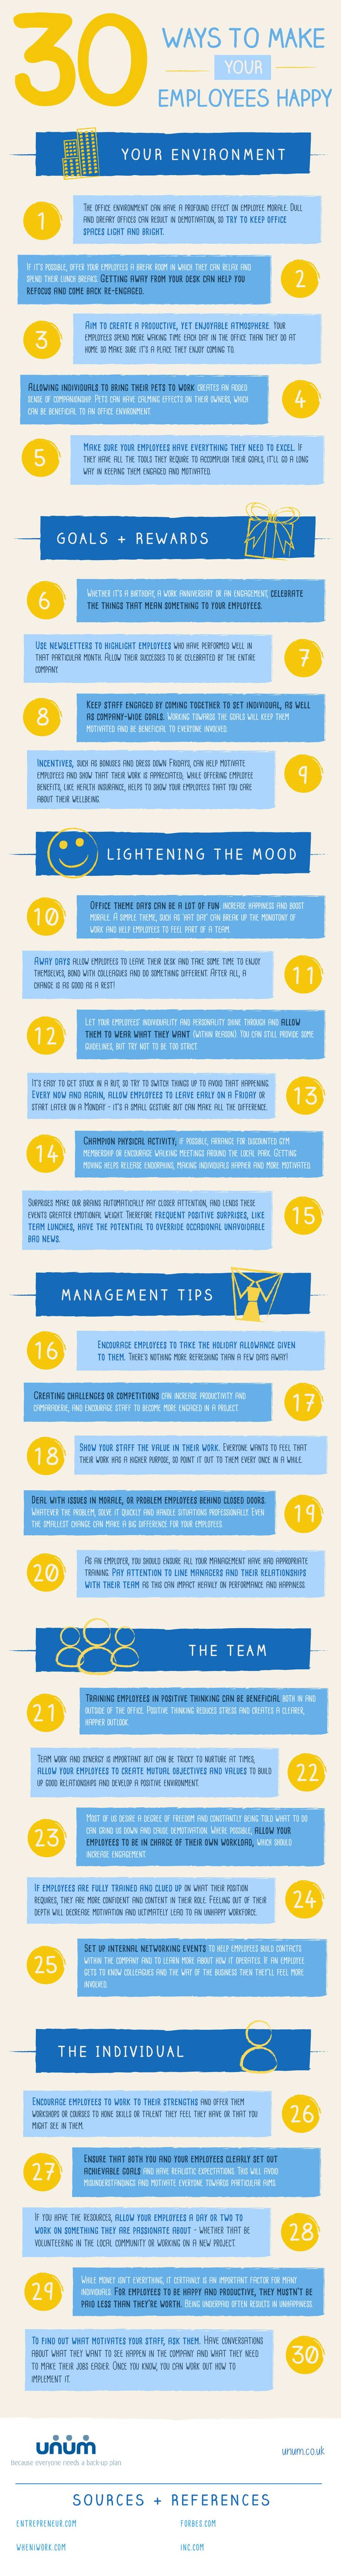 30 ways to make your employees happy [Infographic] - Unum